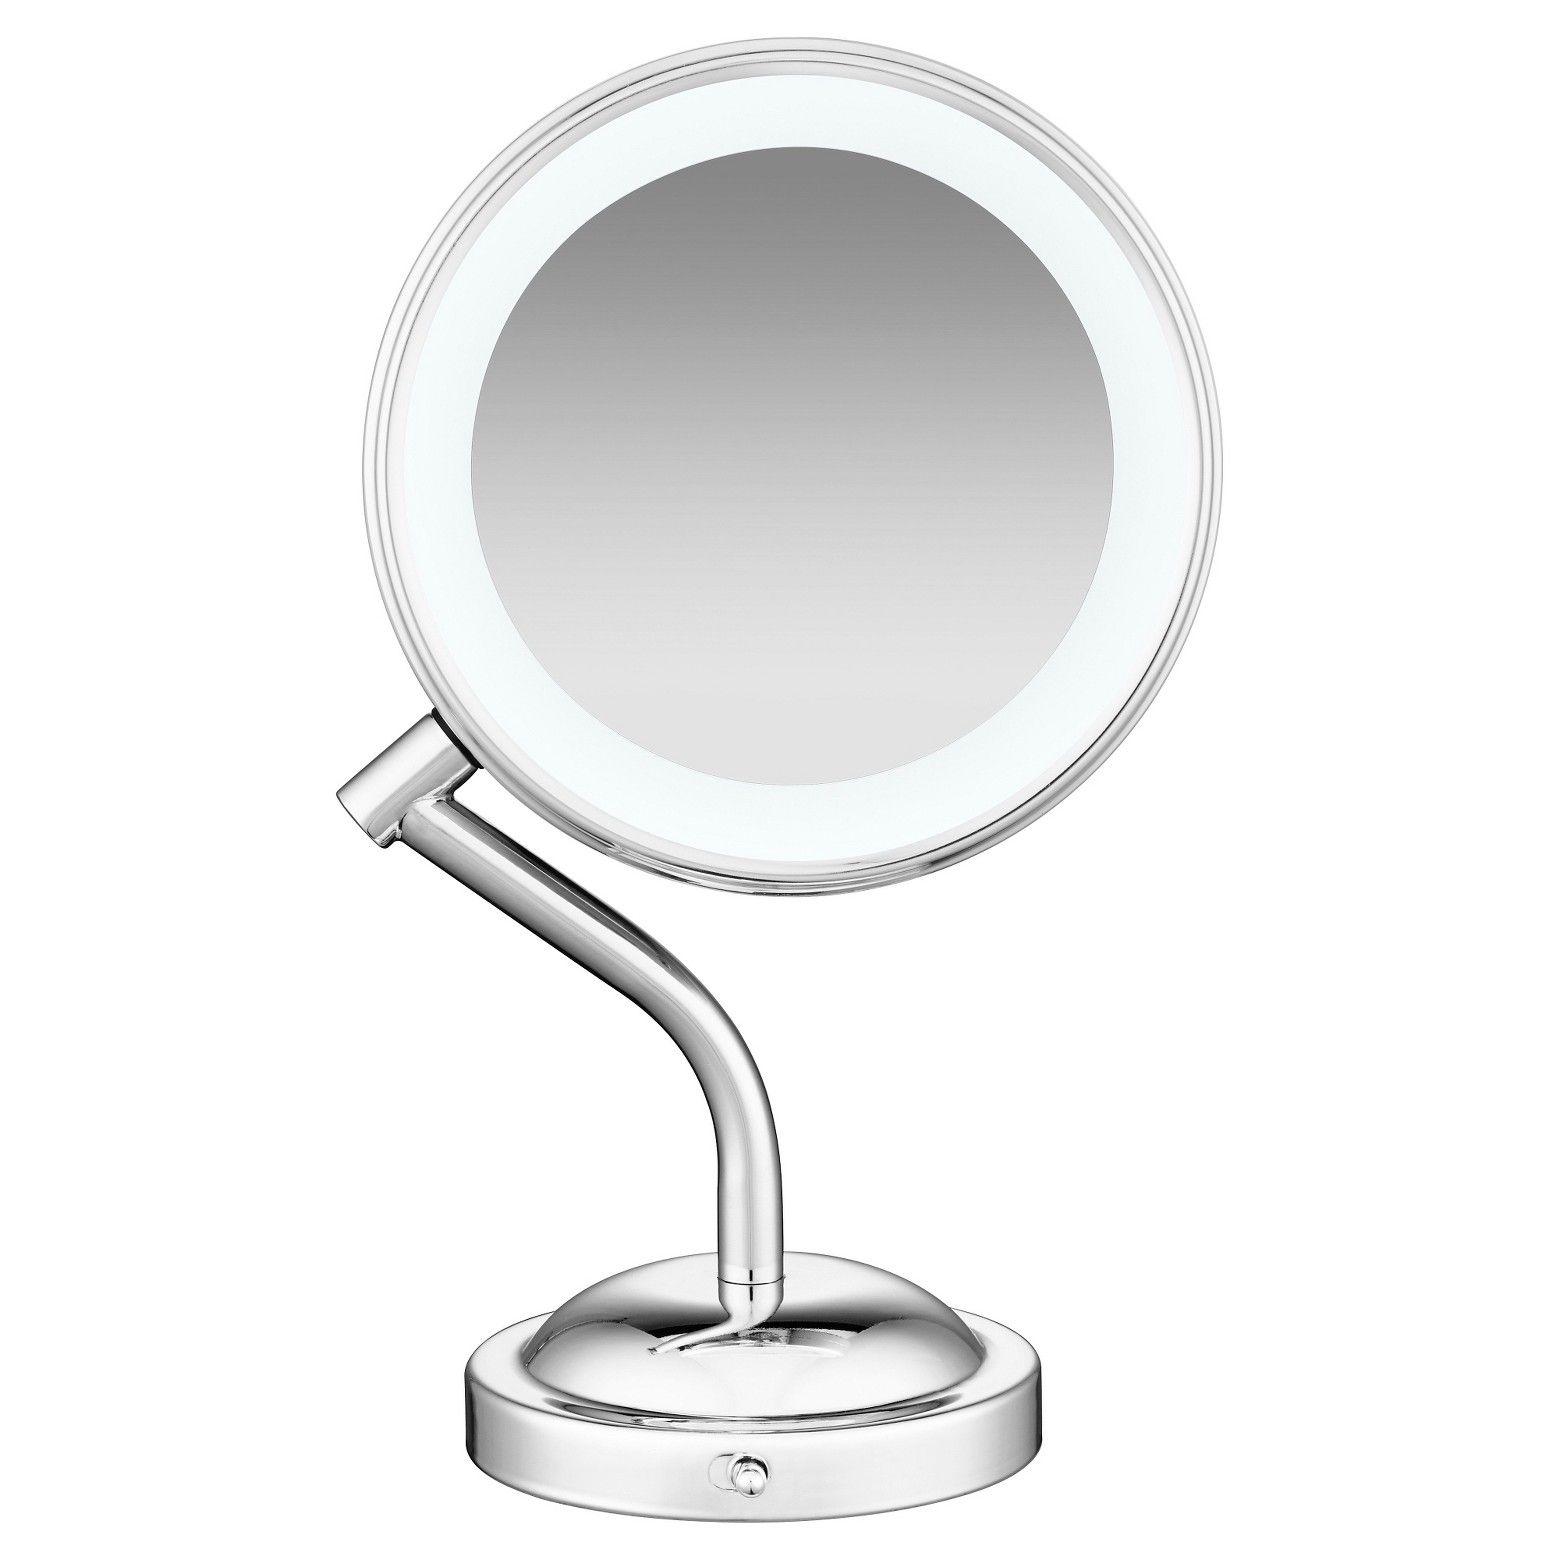 The Curved Stem Stand Up Led Lighted Mirror By Conair Has 2 Sided